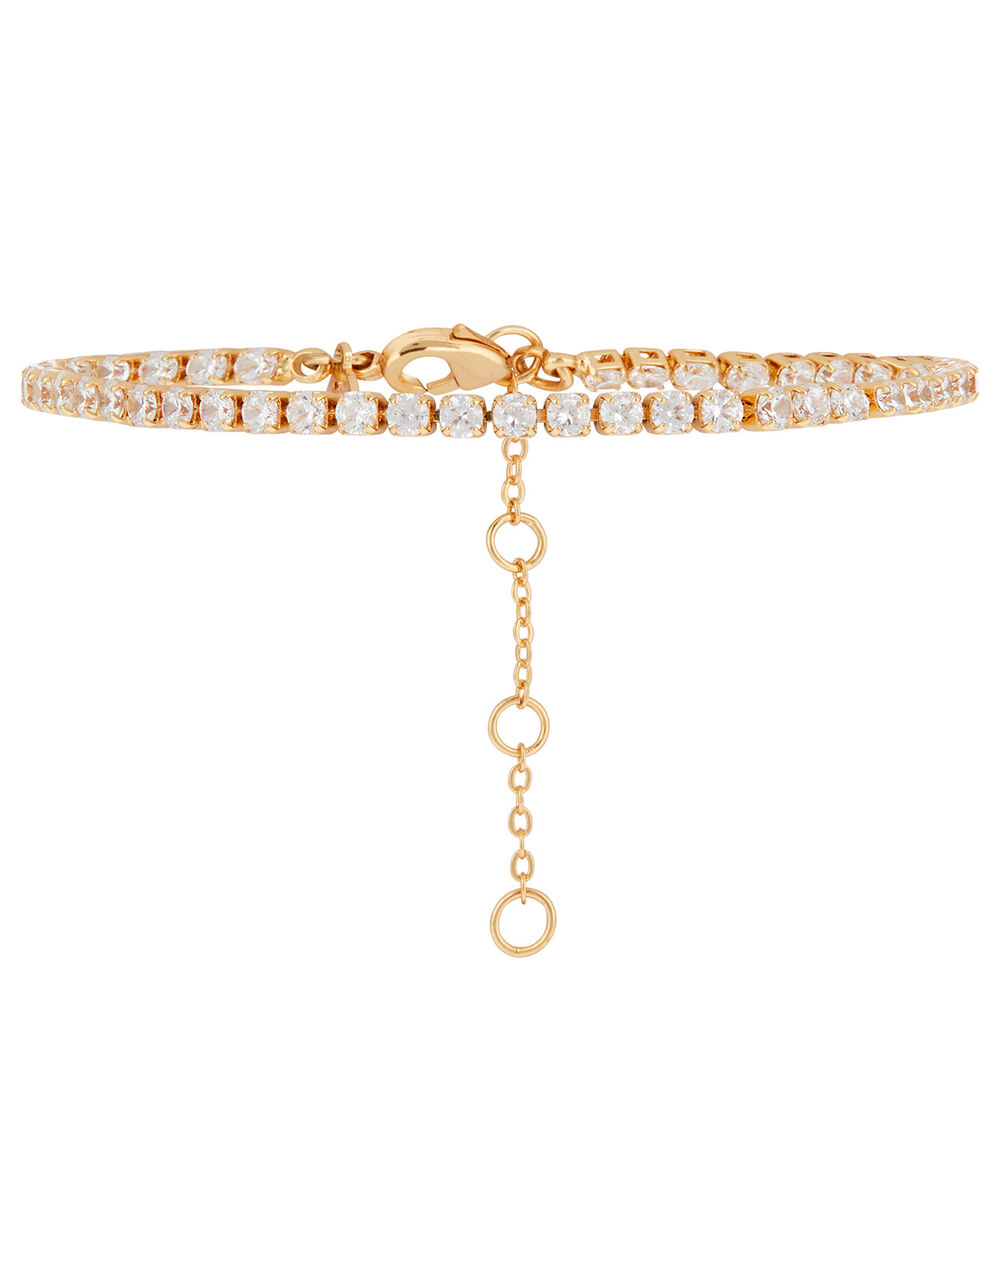 Gold-Plated Crystal Tennis Bracelet, , large